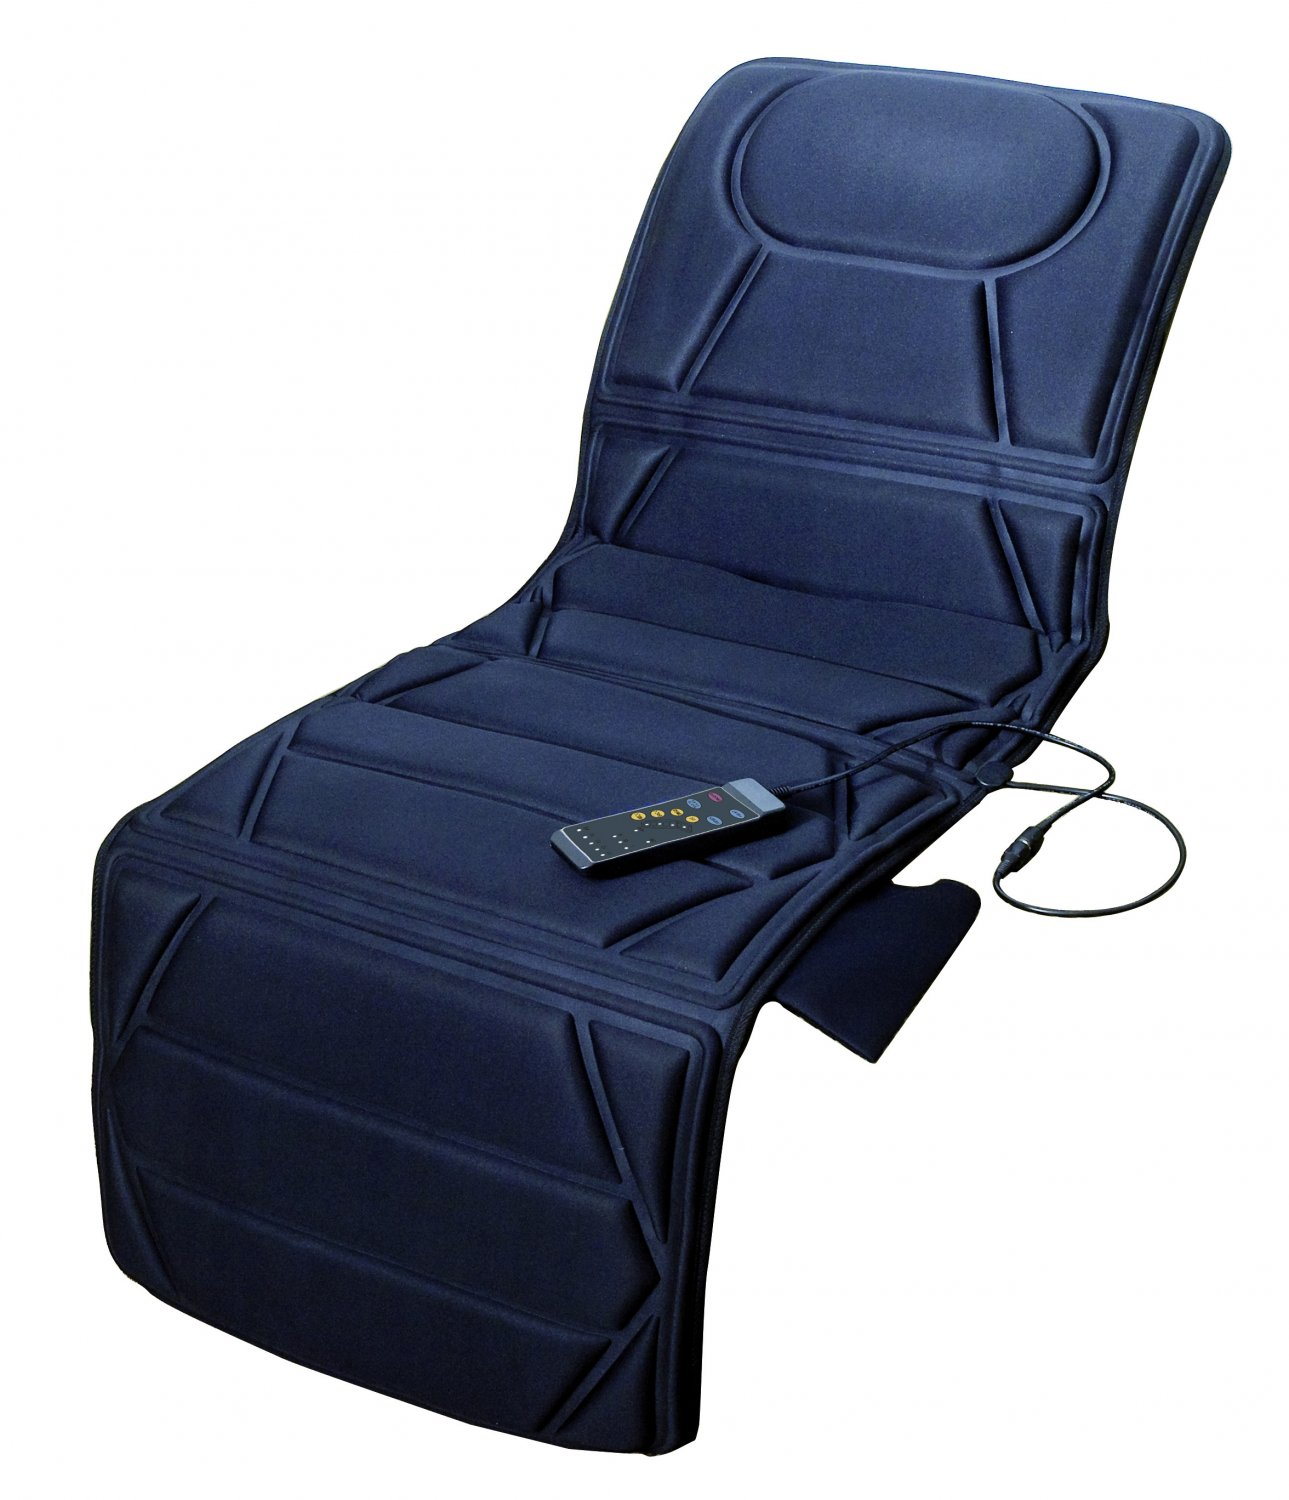 Carepeutic Targeted Zone Deluxe Vibration Massage Mat with Heat Therapy